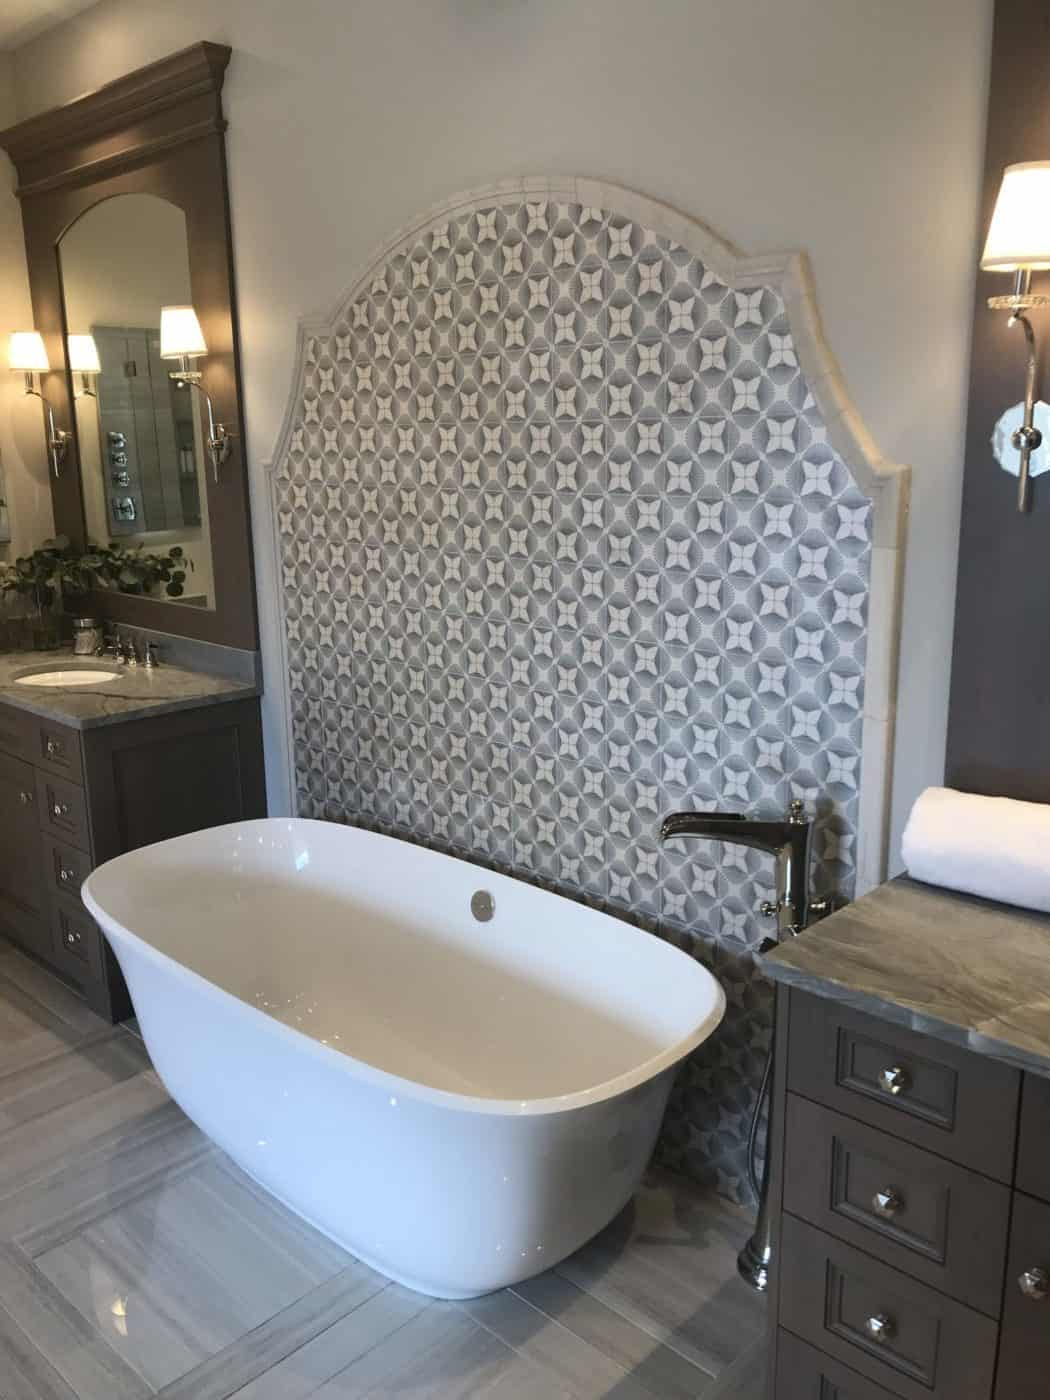 Briolette Tub Backsplash (bathroom)